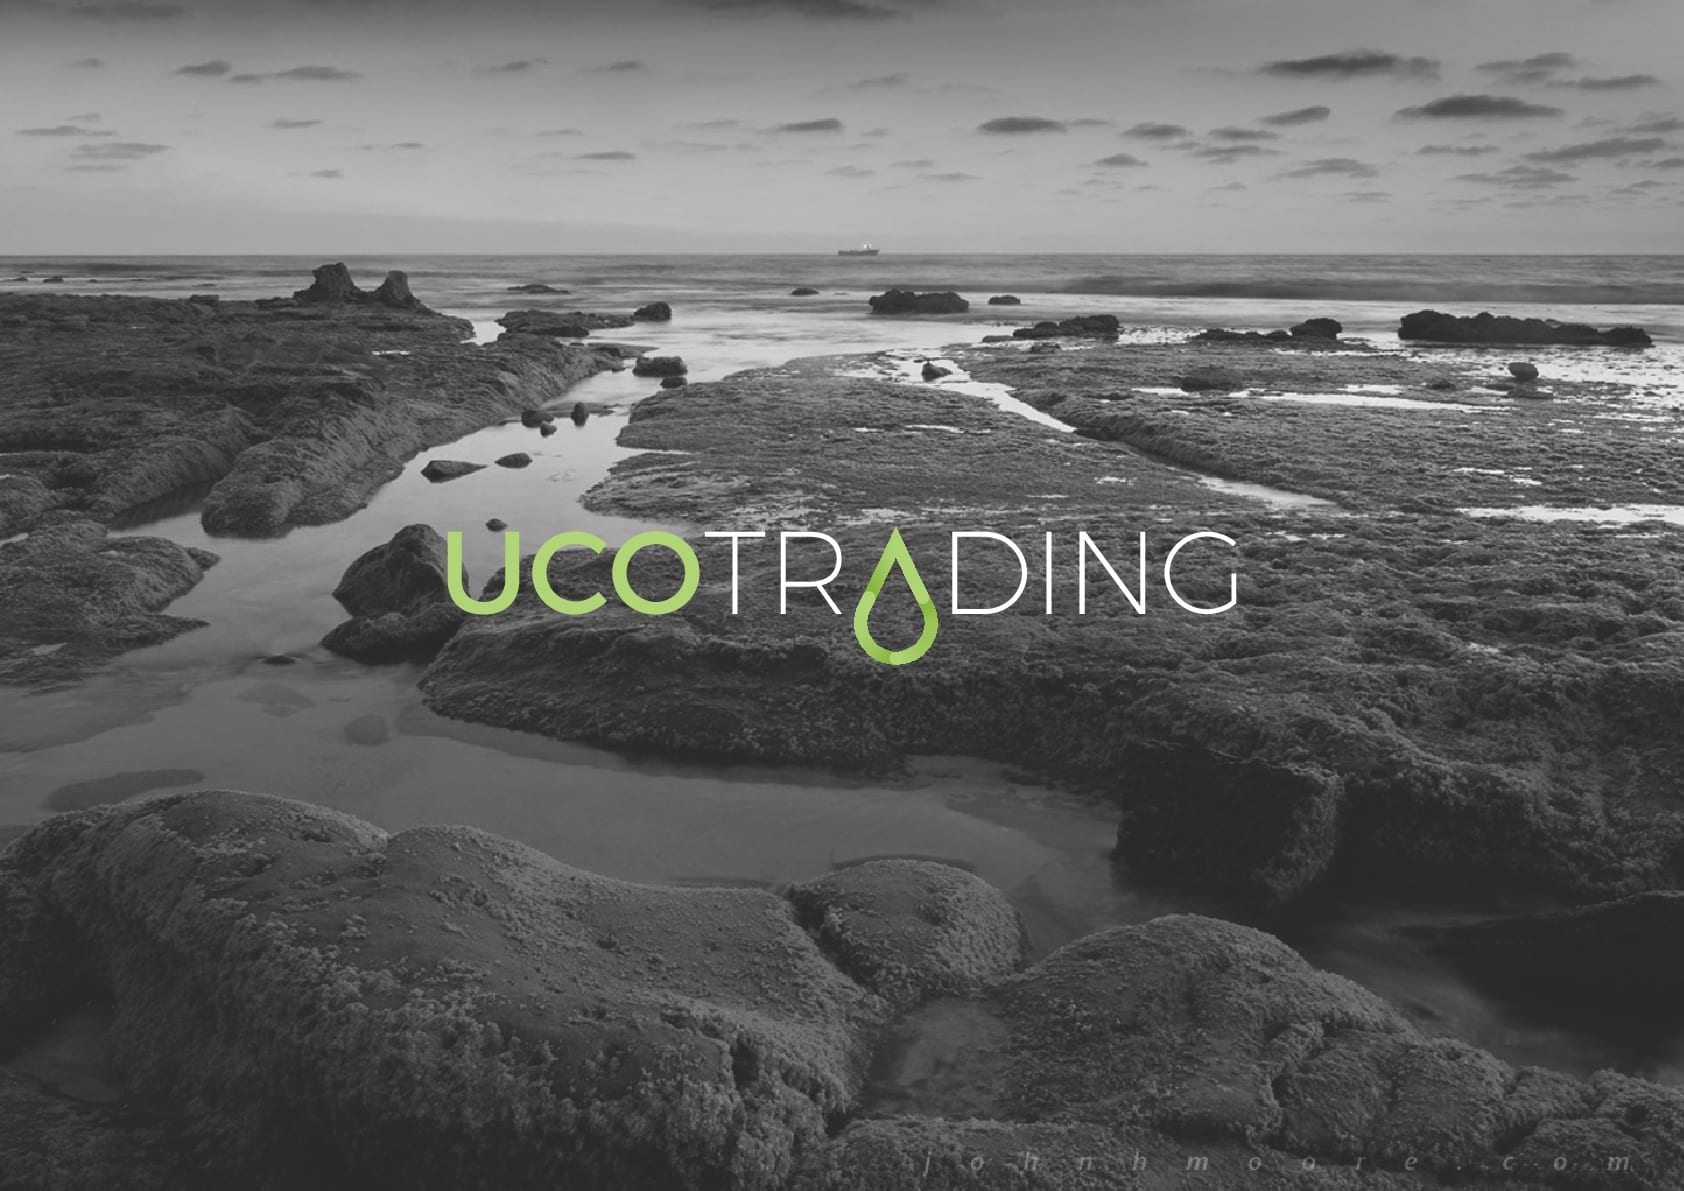 Uco Trading in regional television (Tpa)